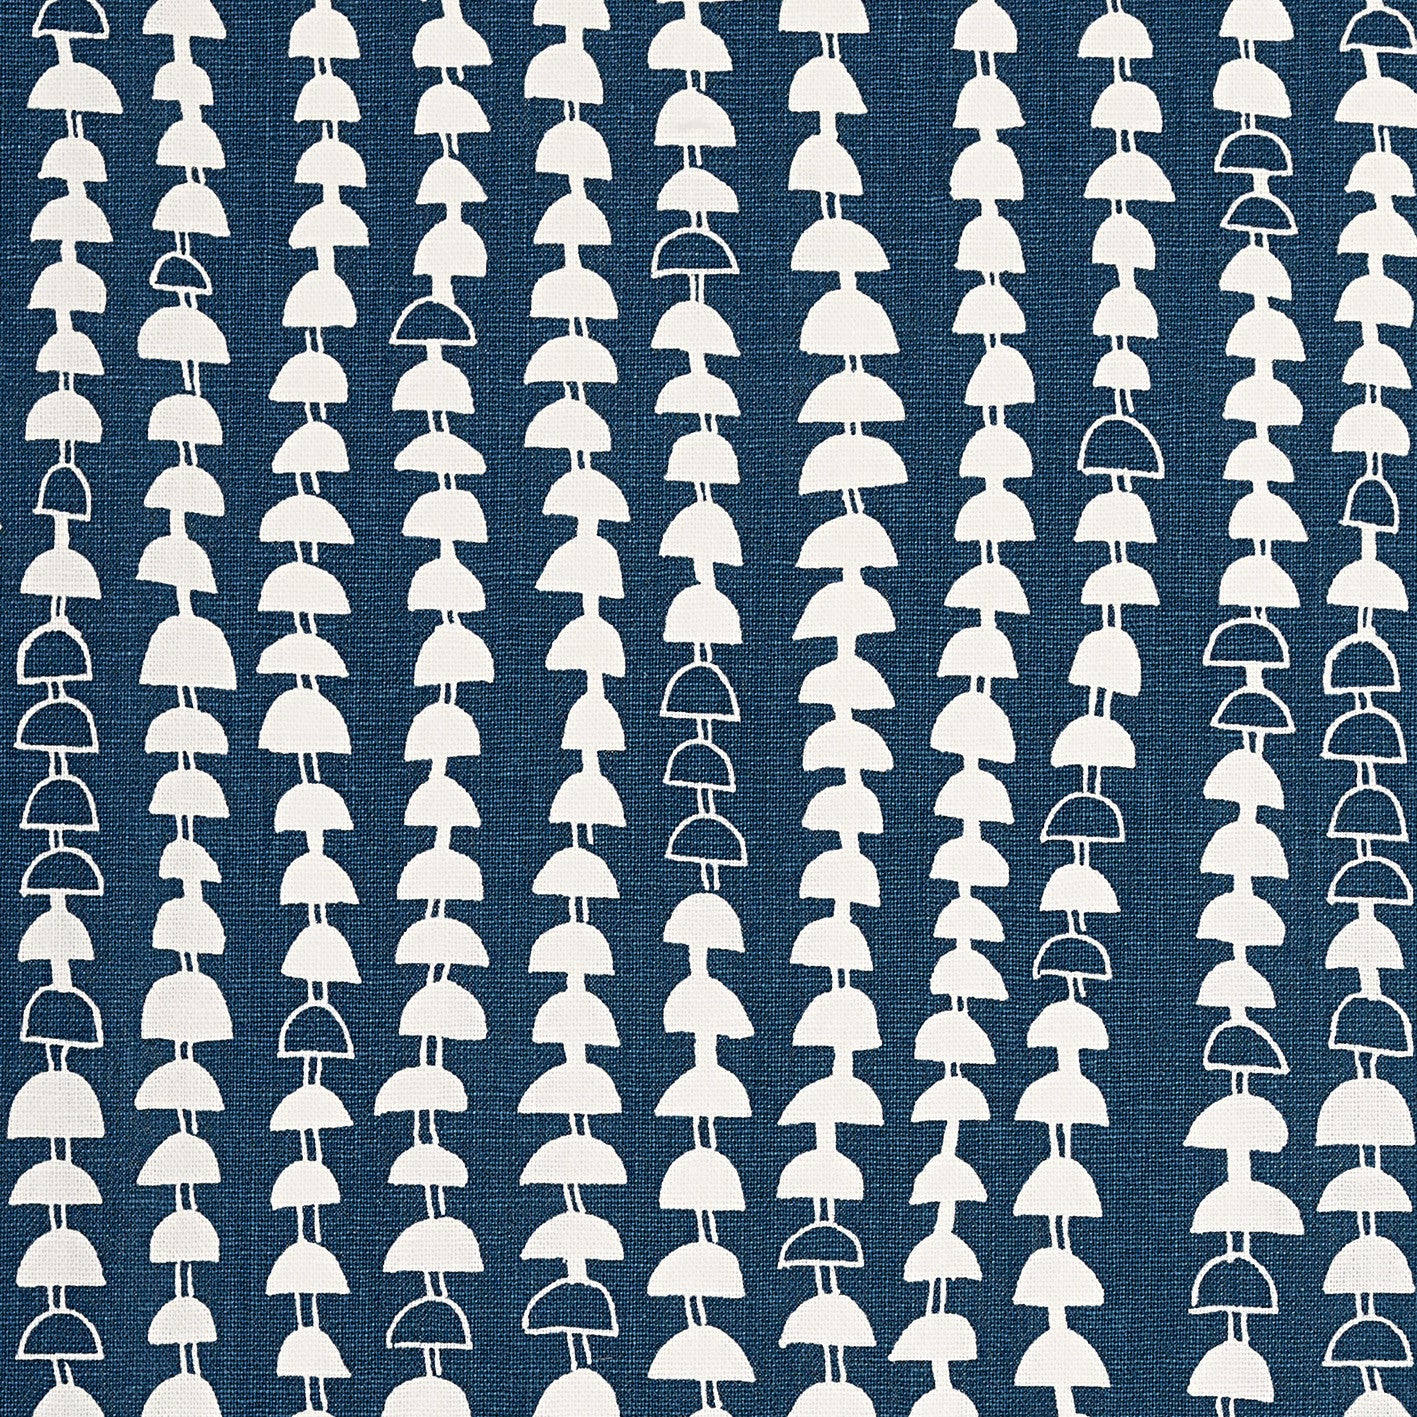 Hopi Graphic Bead Pattern Cotton Fabric In Petrol Blue